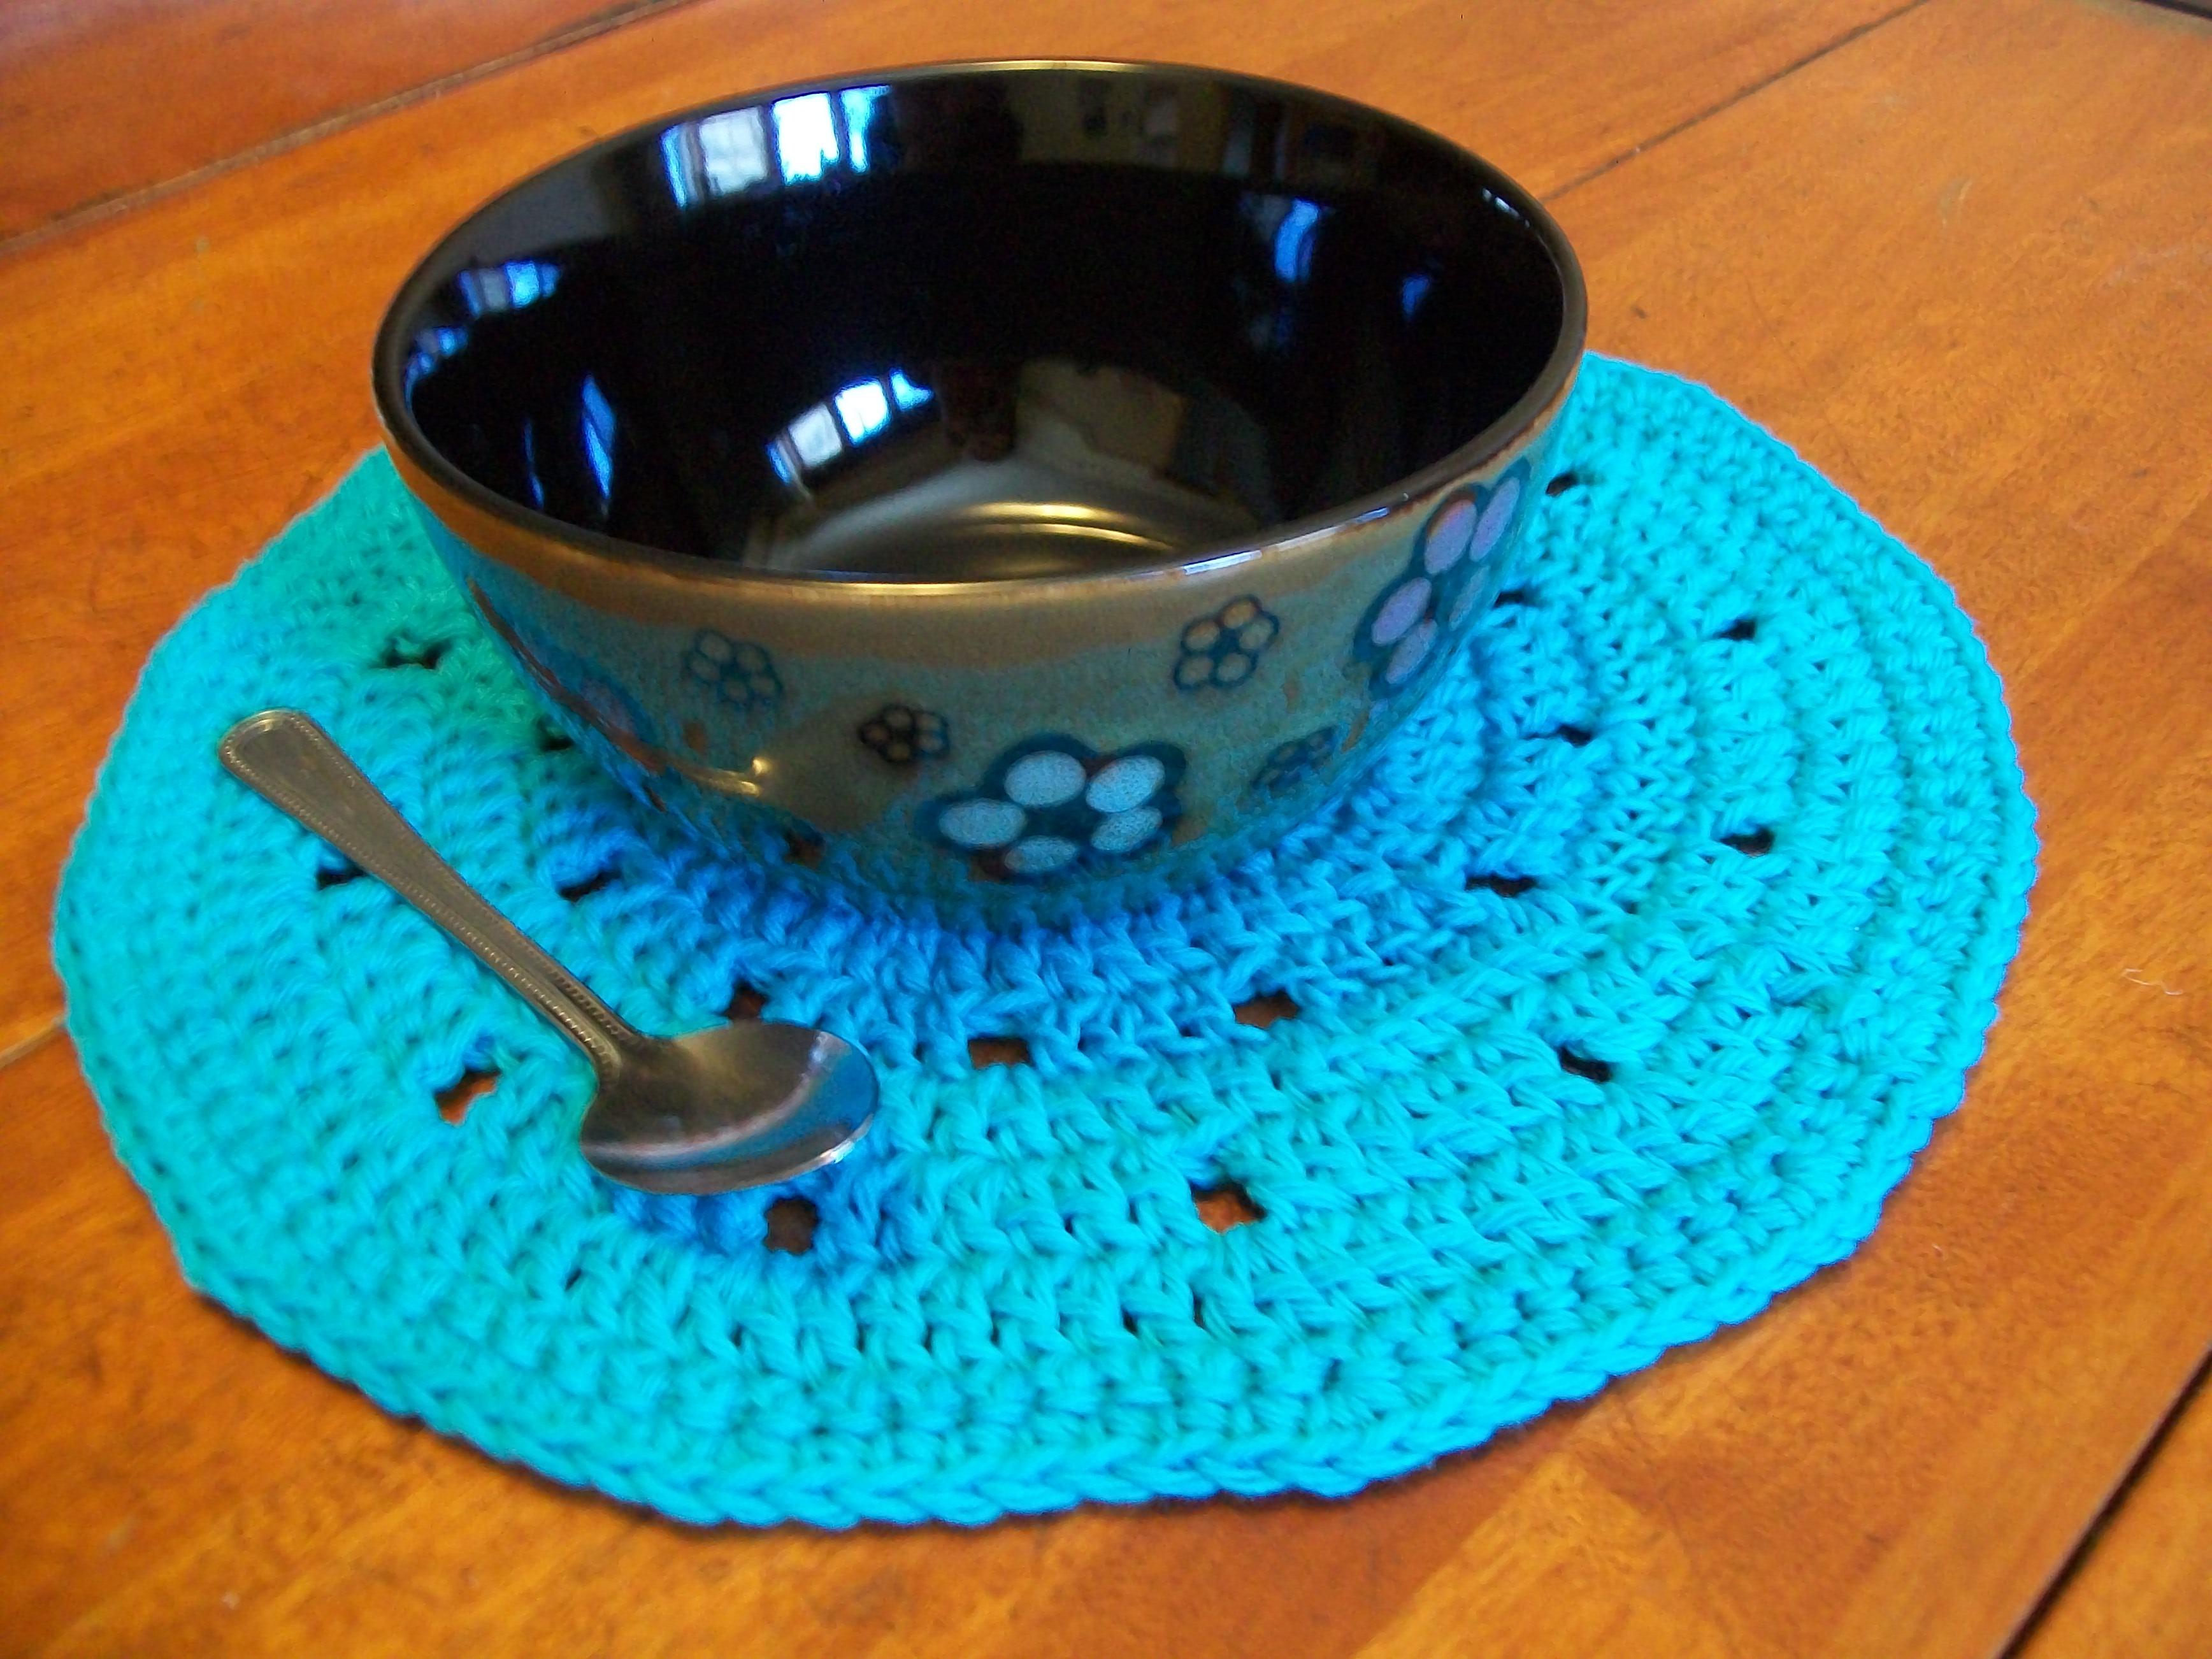 37 crochet placemat patterns guide patterns crochet a round placemat bankloansurffo Gallery